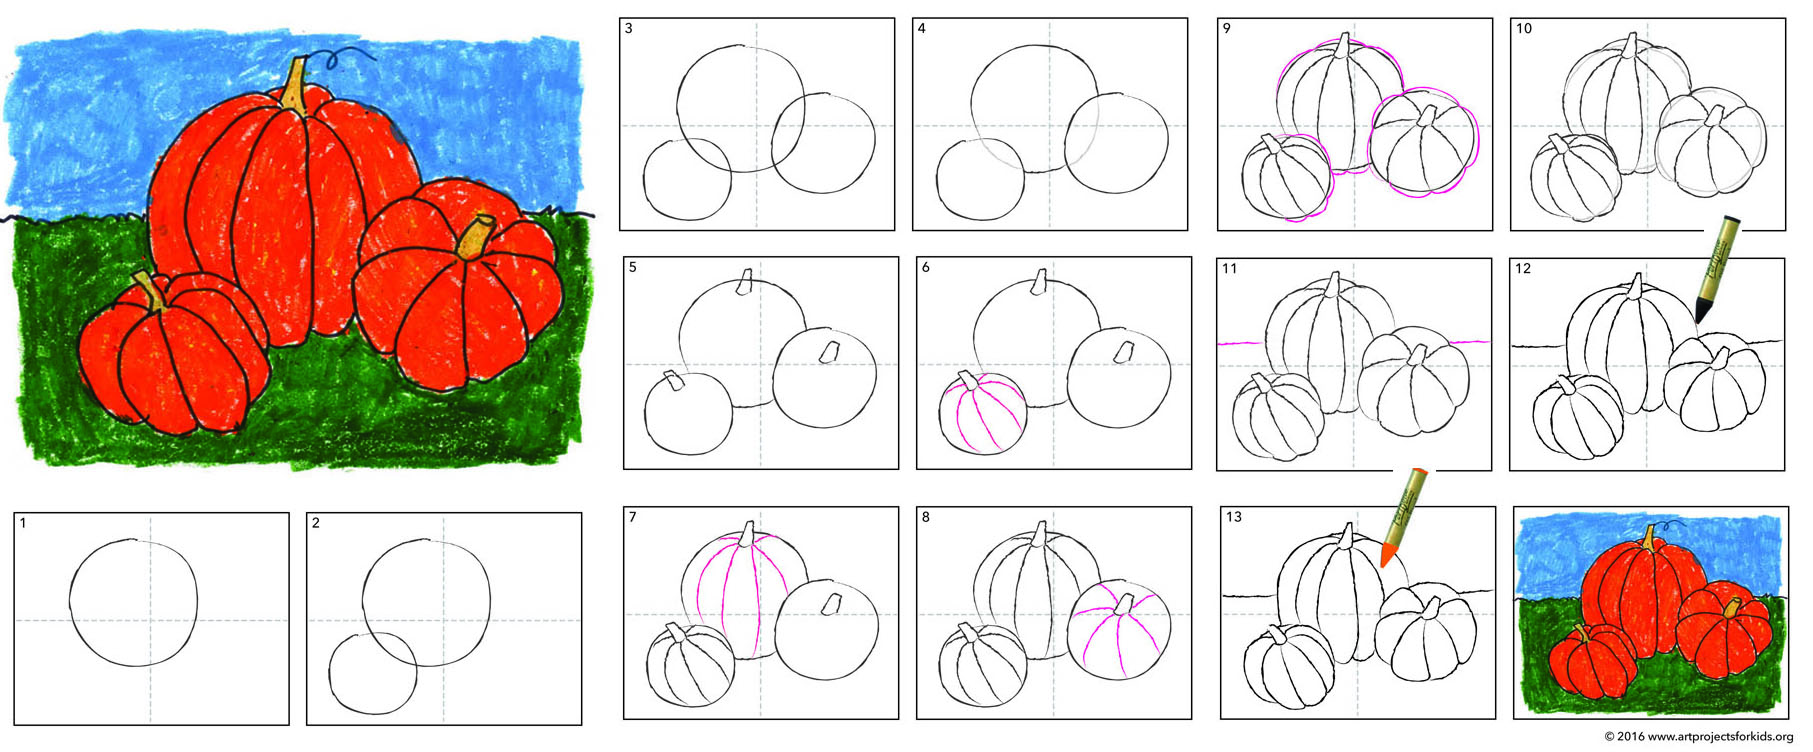 Pumpkin drawing art projects for kids for How to make doodle